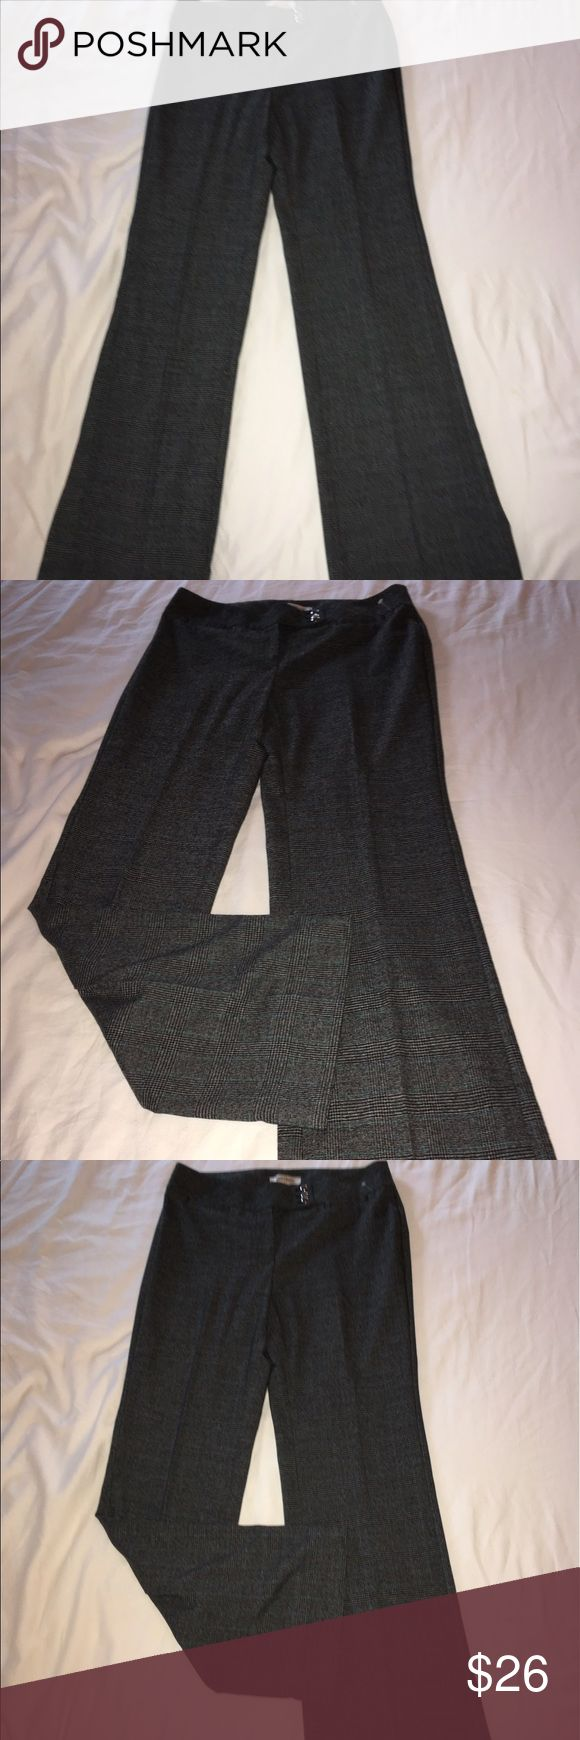 "🍓BRAND NEW WHITE HOUSE BLACK MARKET DRESS PANTS🍓 🍓FABULOUS AND BRAND NEW WHBM DRESS PANTS THE FIT FABULOUSLY AND ARE ACTUALLY SEXY IN A CLASSY WAY. YOU'LL GET THAT PROMOTION SPORTING THESE TO WORK. MID RISE, BLACK/GRAY TIGHT PLAID, WIDE LEG. FRONT AND BACK POCKETS. SIZE 6. WAIST>TO 30"", HIPS>TO 39"", INSEAM>33"". RETAIL $128. White House Black Market Pants Trousers"